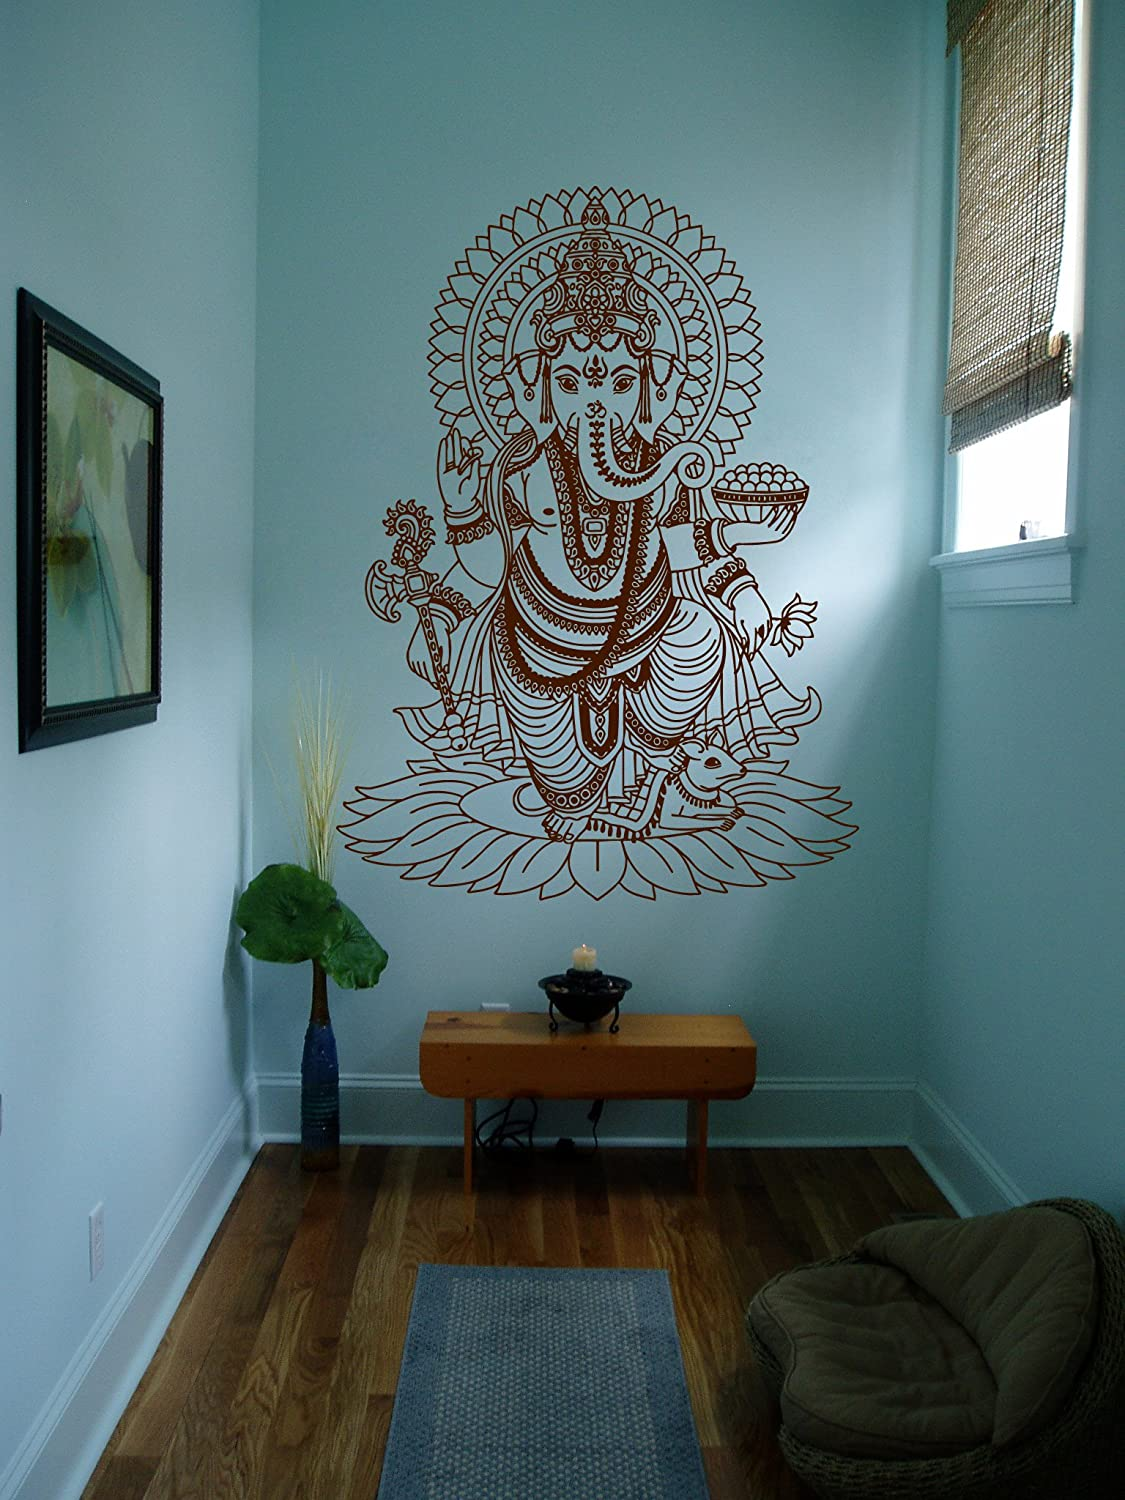 STICKERSFORLIFE Ik430 Wall Decal Sticker Room Decor Wall Art Mural Indian God Om Elephant Hindu Success Buddha India Ganesha Ganesh Hindu Welfare Bedroom Meditation Yoga